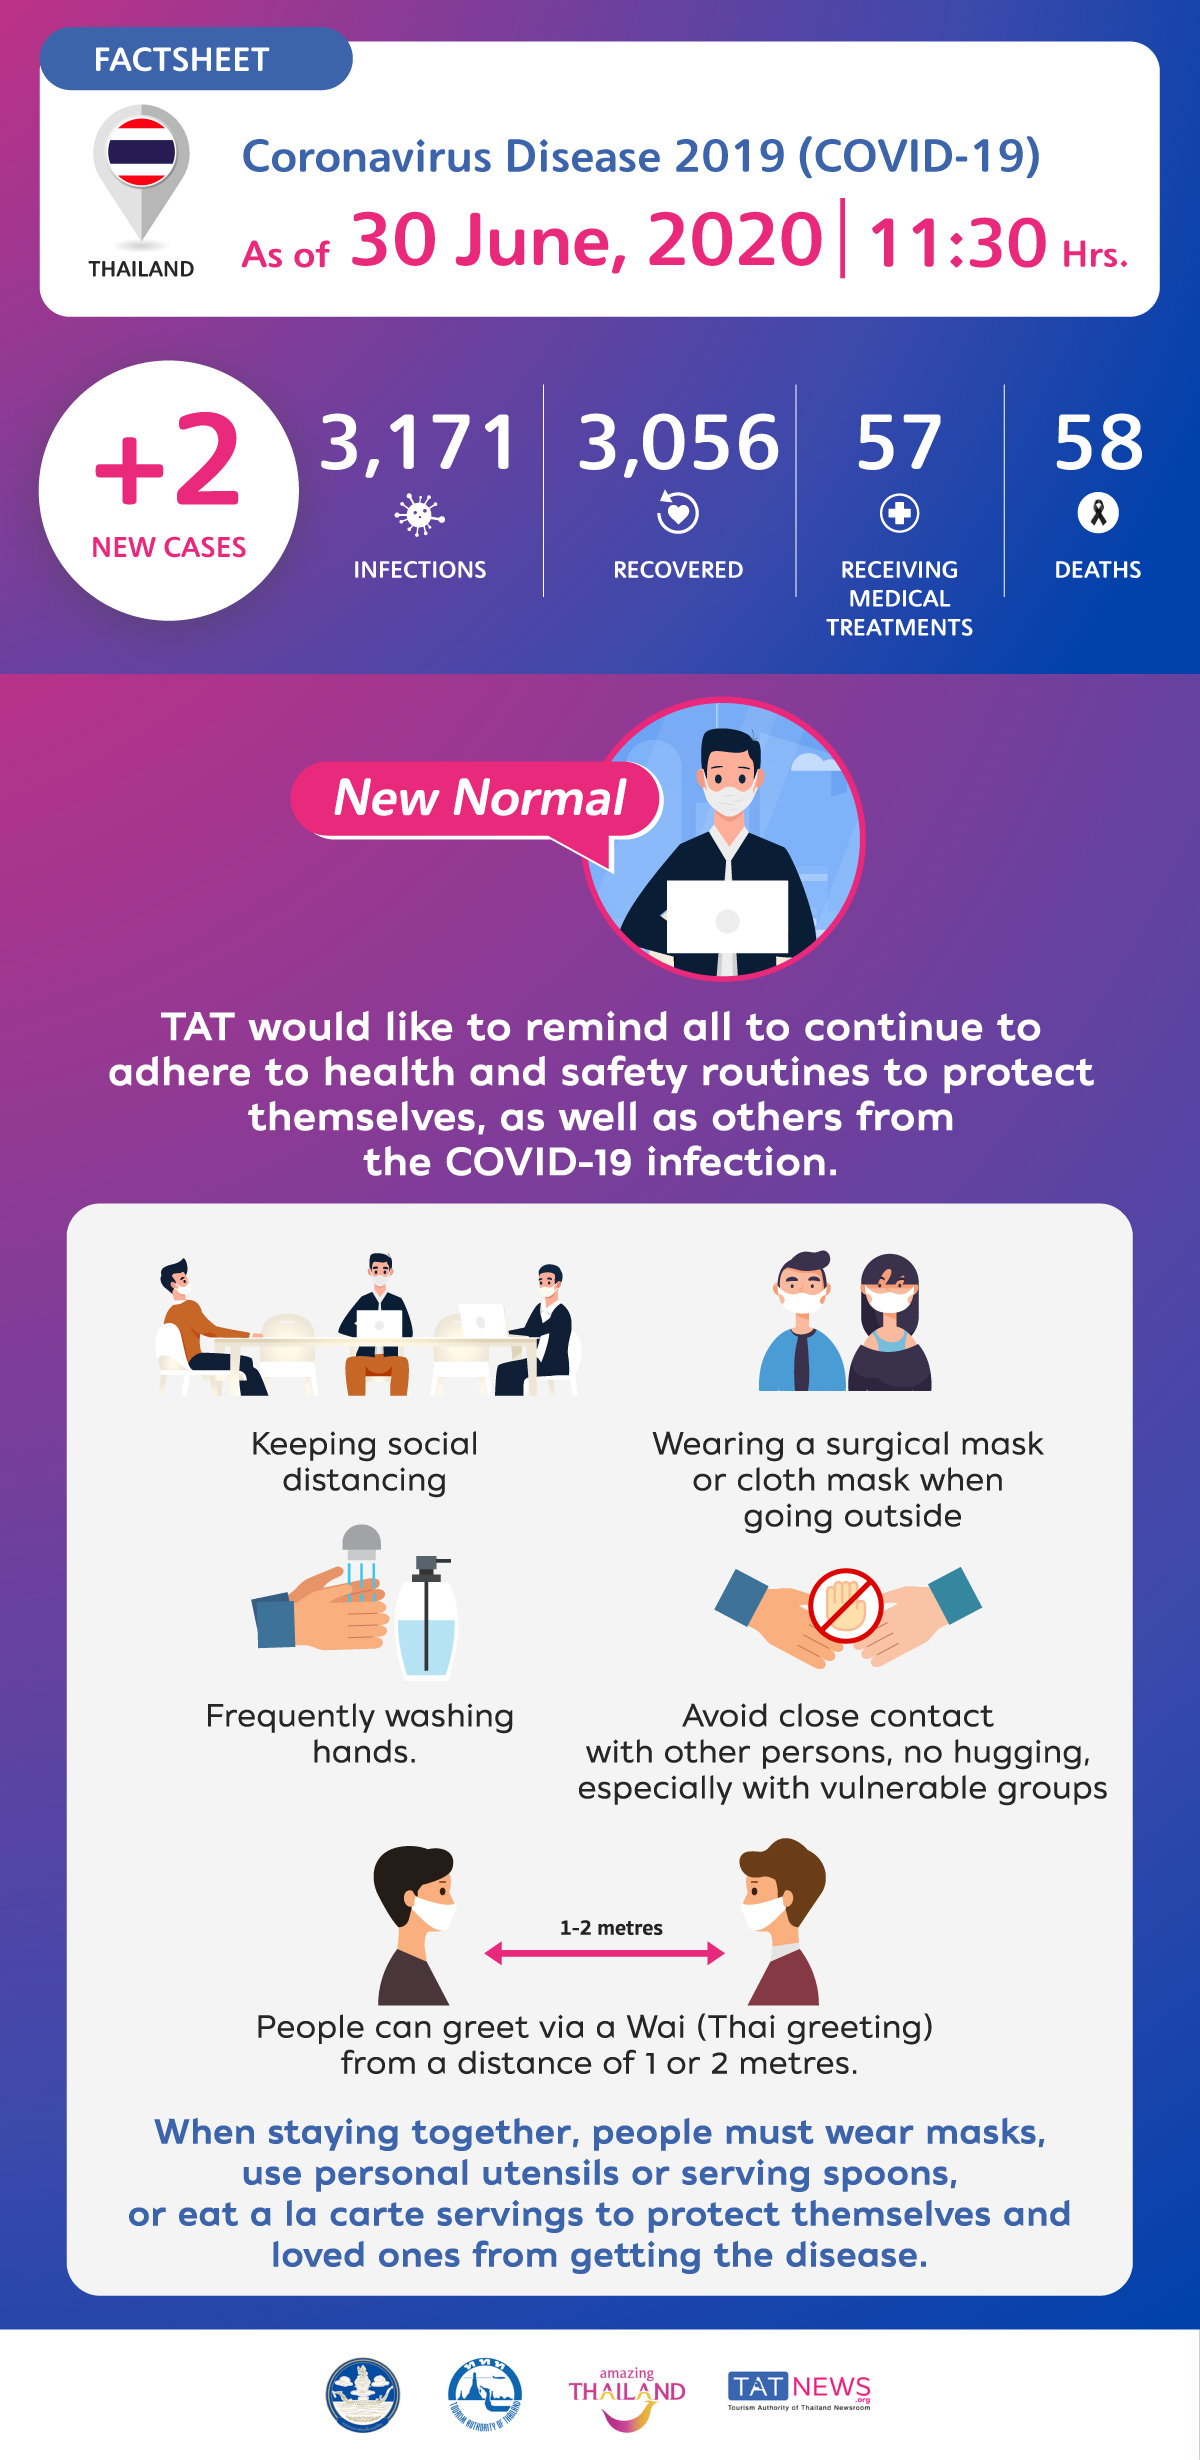 Coronavirus Disease 2019 (COVID-19) situation in Thailand as of 30 June 2020, 11.30 Hrs.